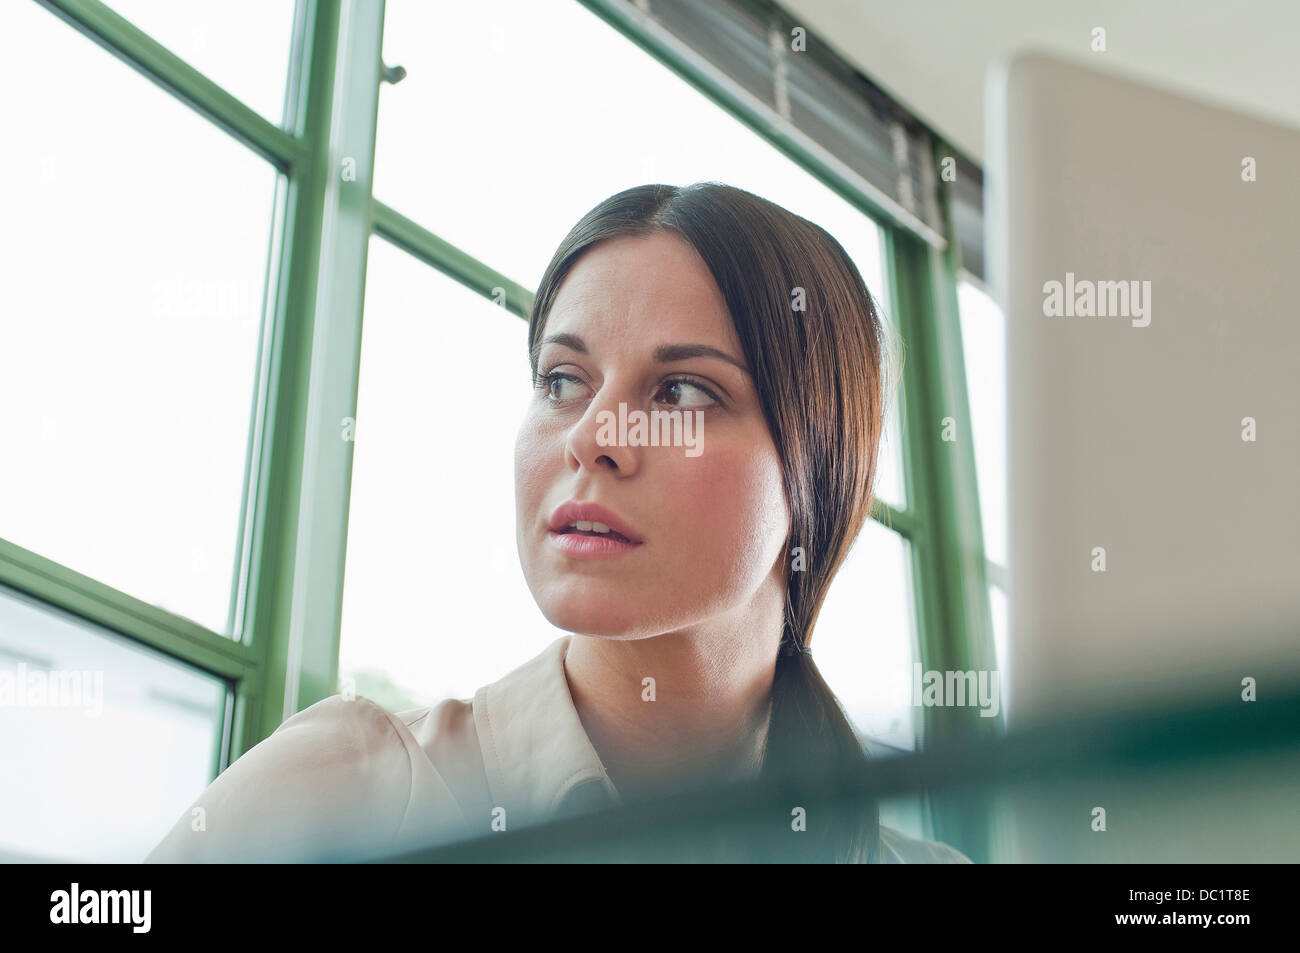 Young female office worker looking out of window - Stock Image